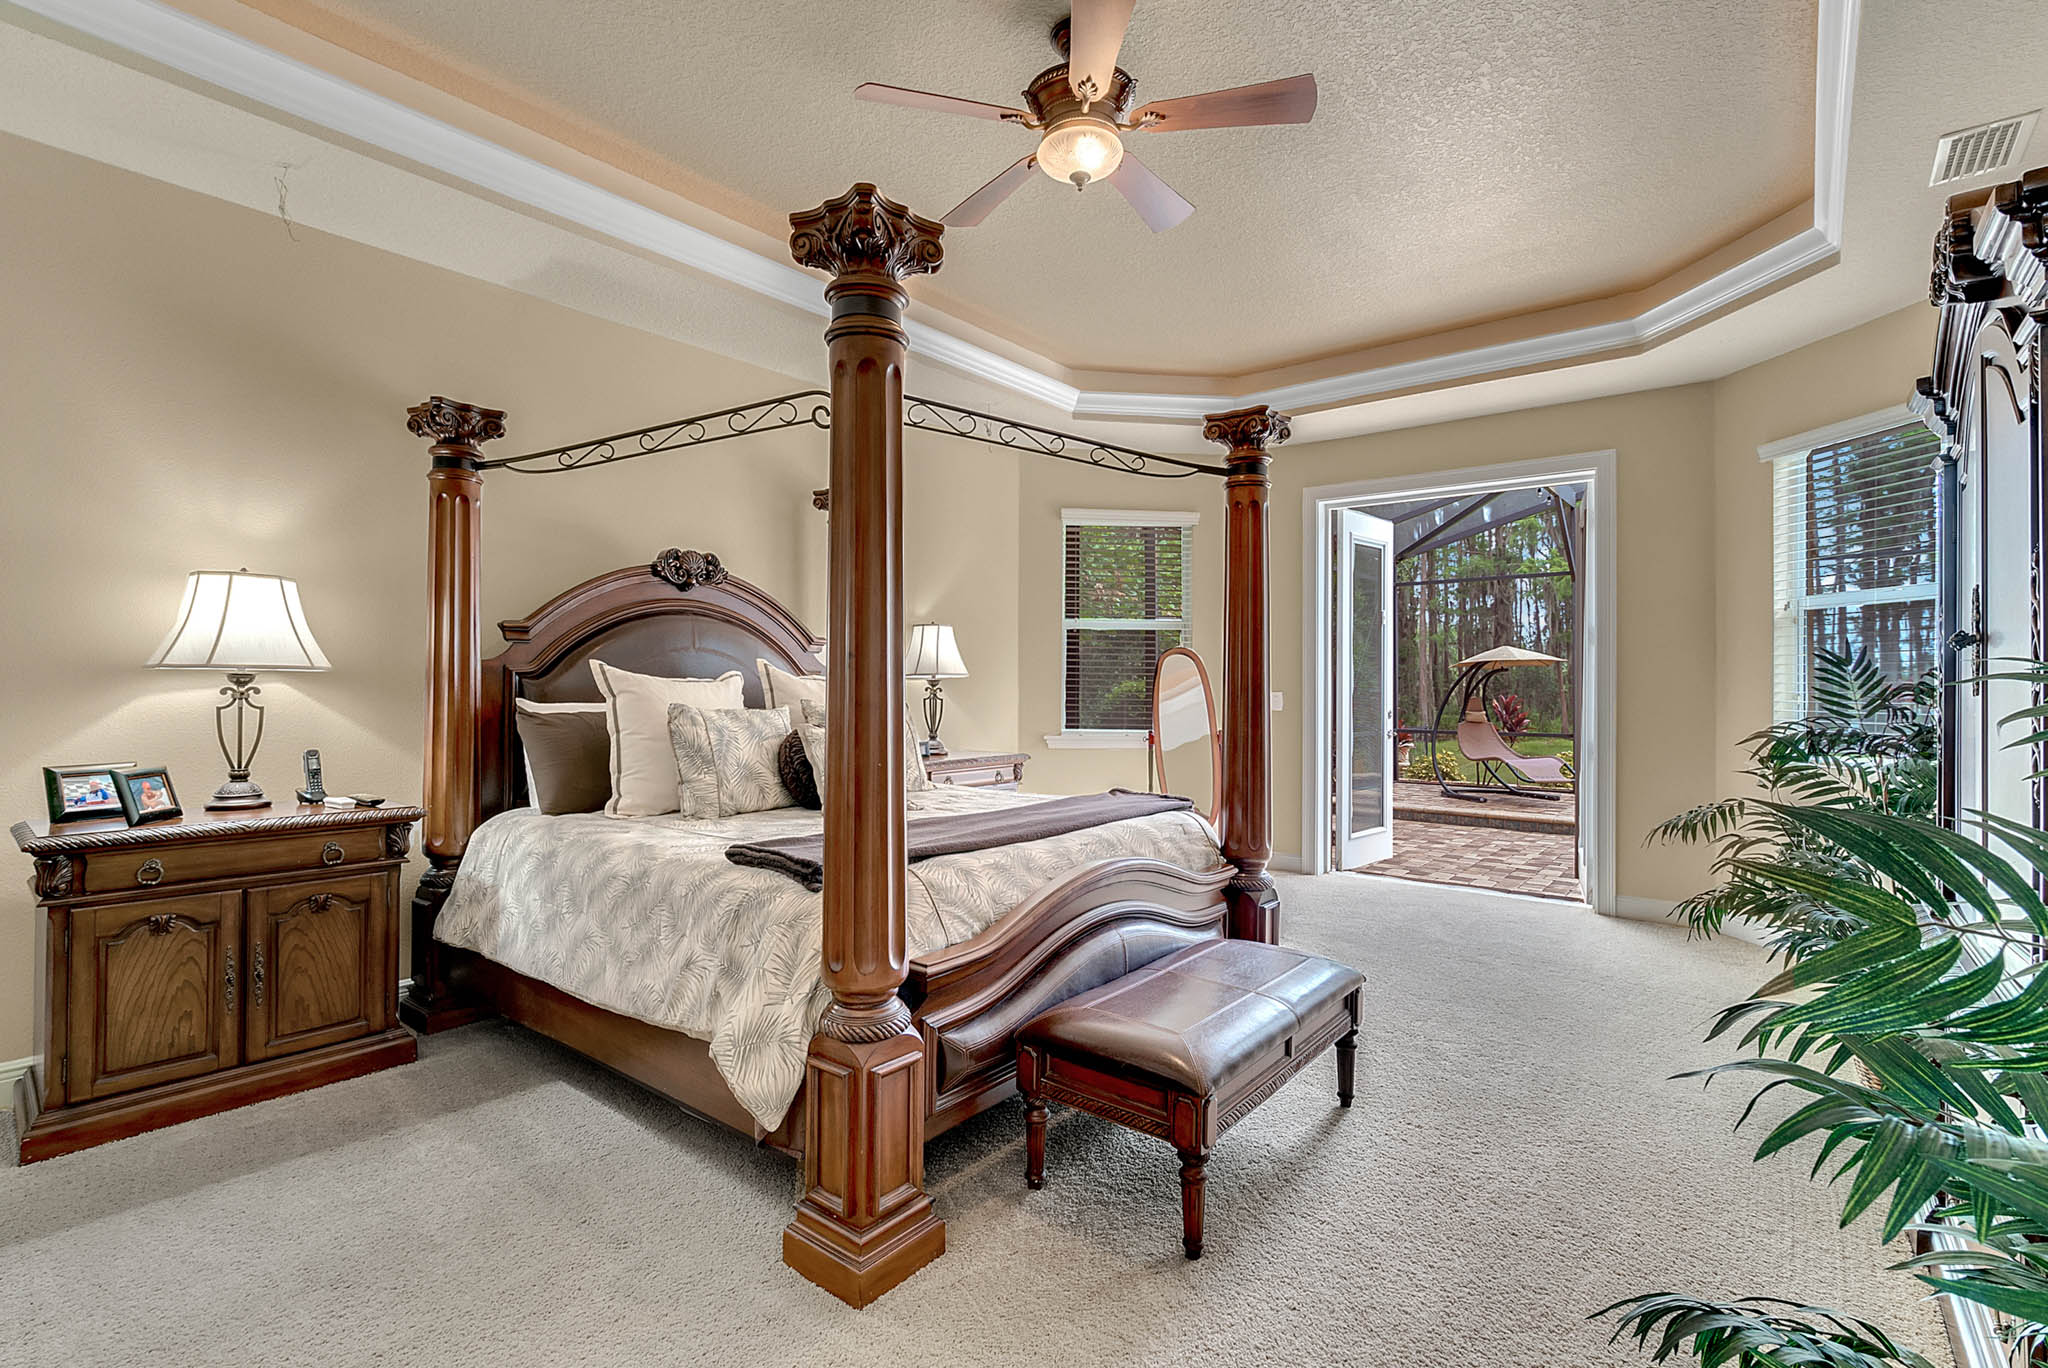 7919-Florida-Boys-Ranch-Rd--Groveland--FL-34736----19---Master-Bedroom.jpg